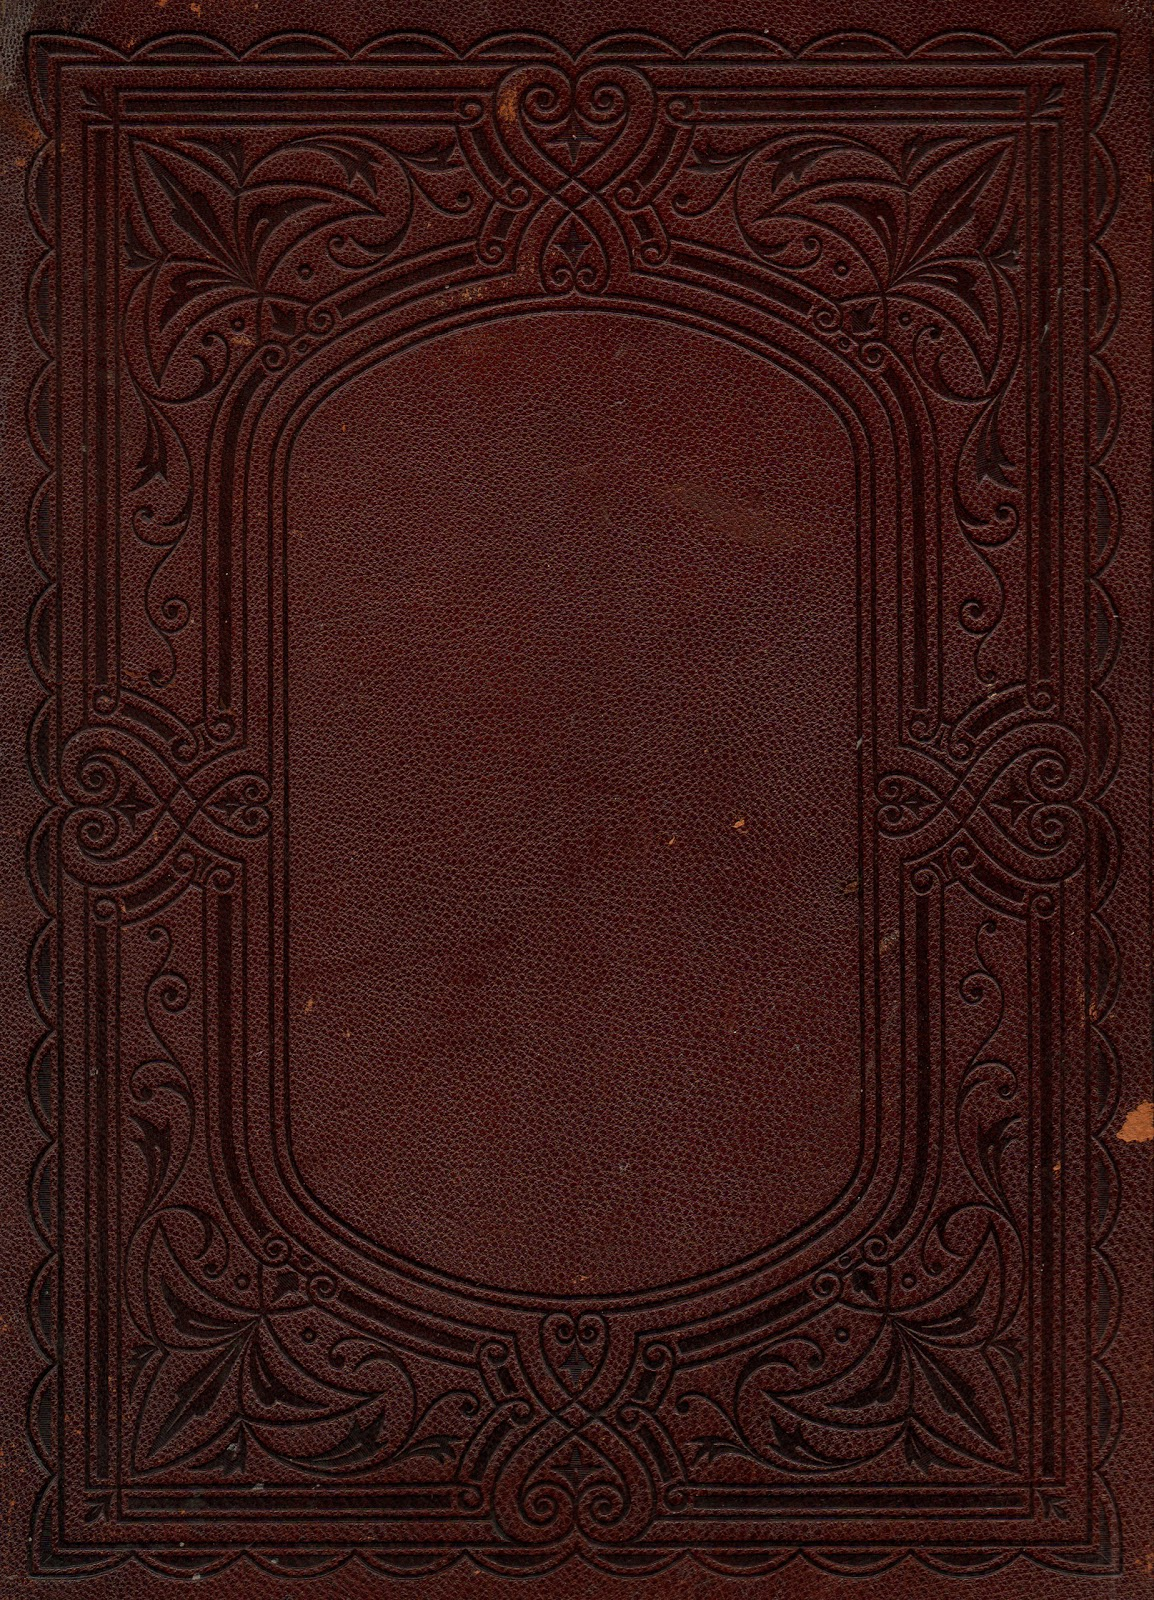 Old Book Cover Background ~ Leaping frog designs antique book cover frame free png image